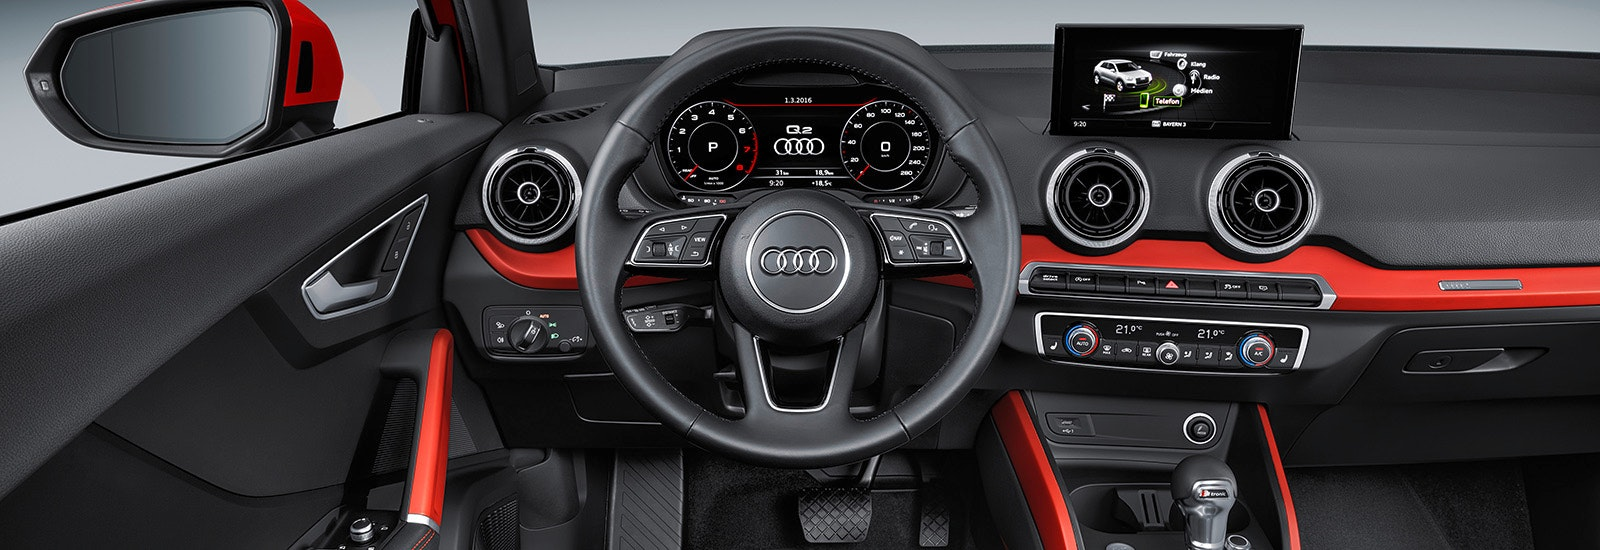 Audi Q2 Release Date >> Audi SQ2 price, specs and release date | carwow